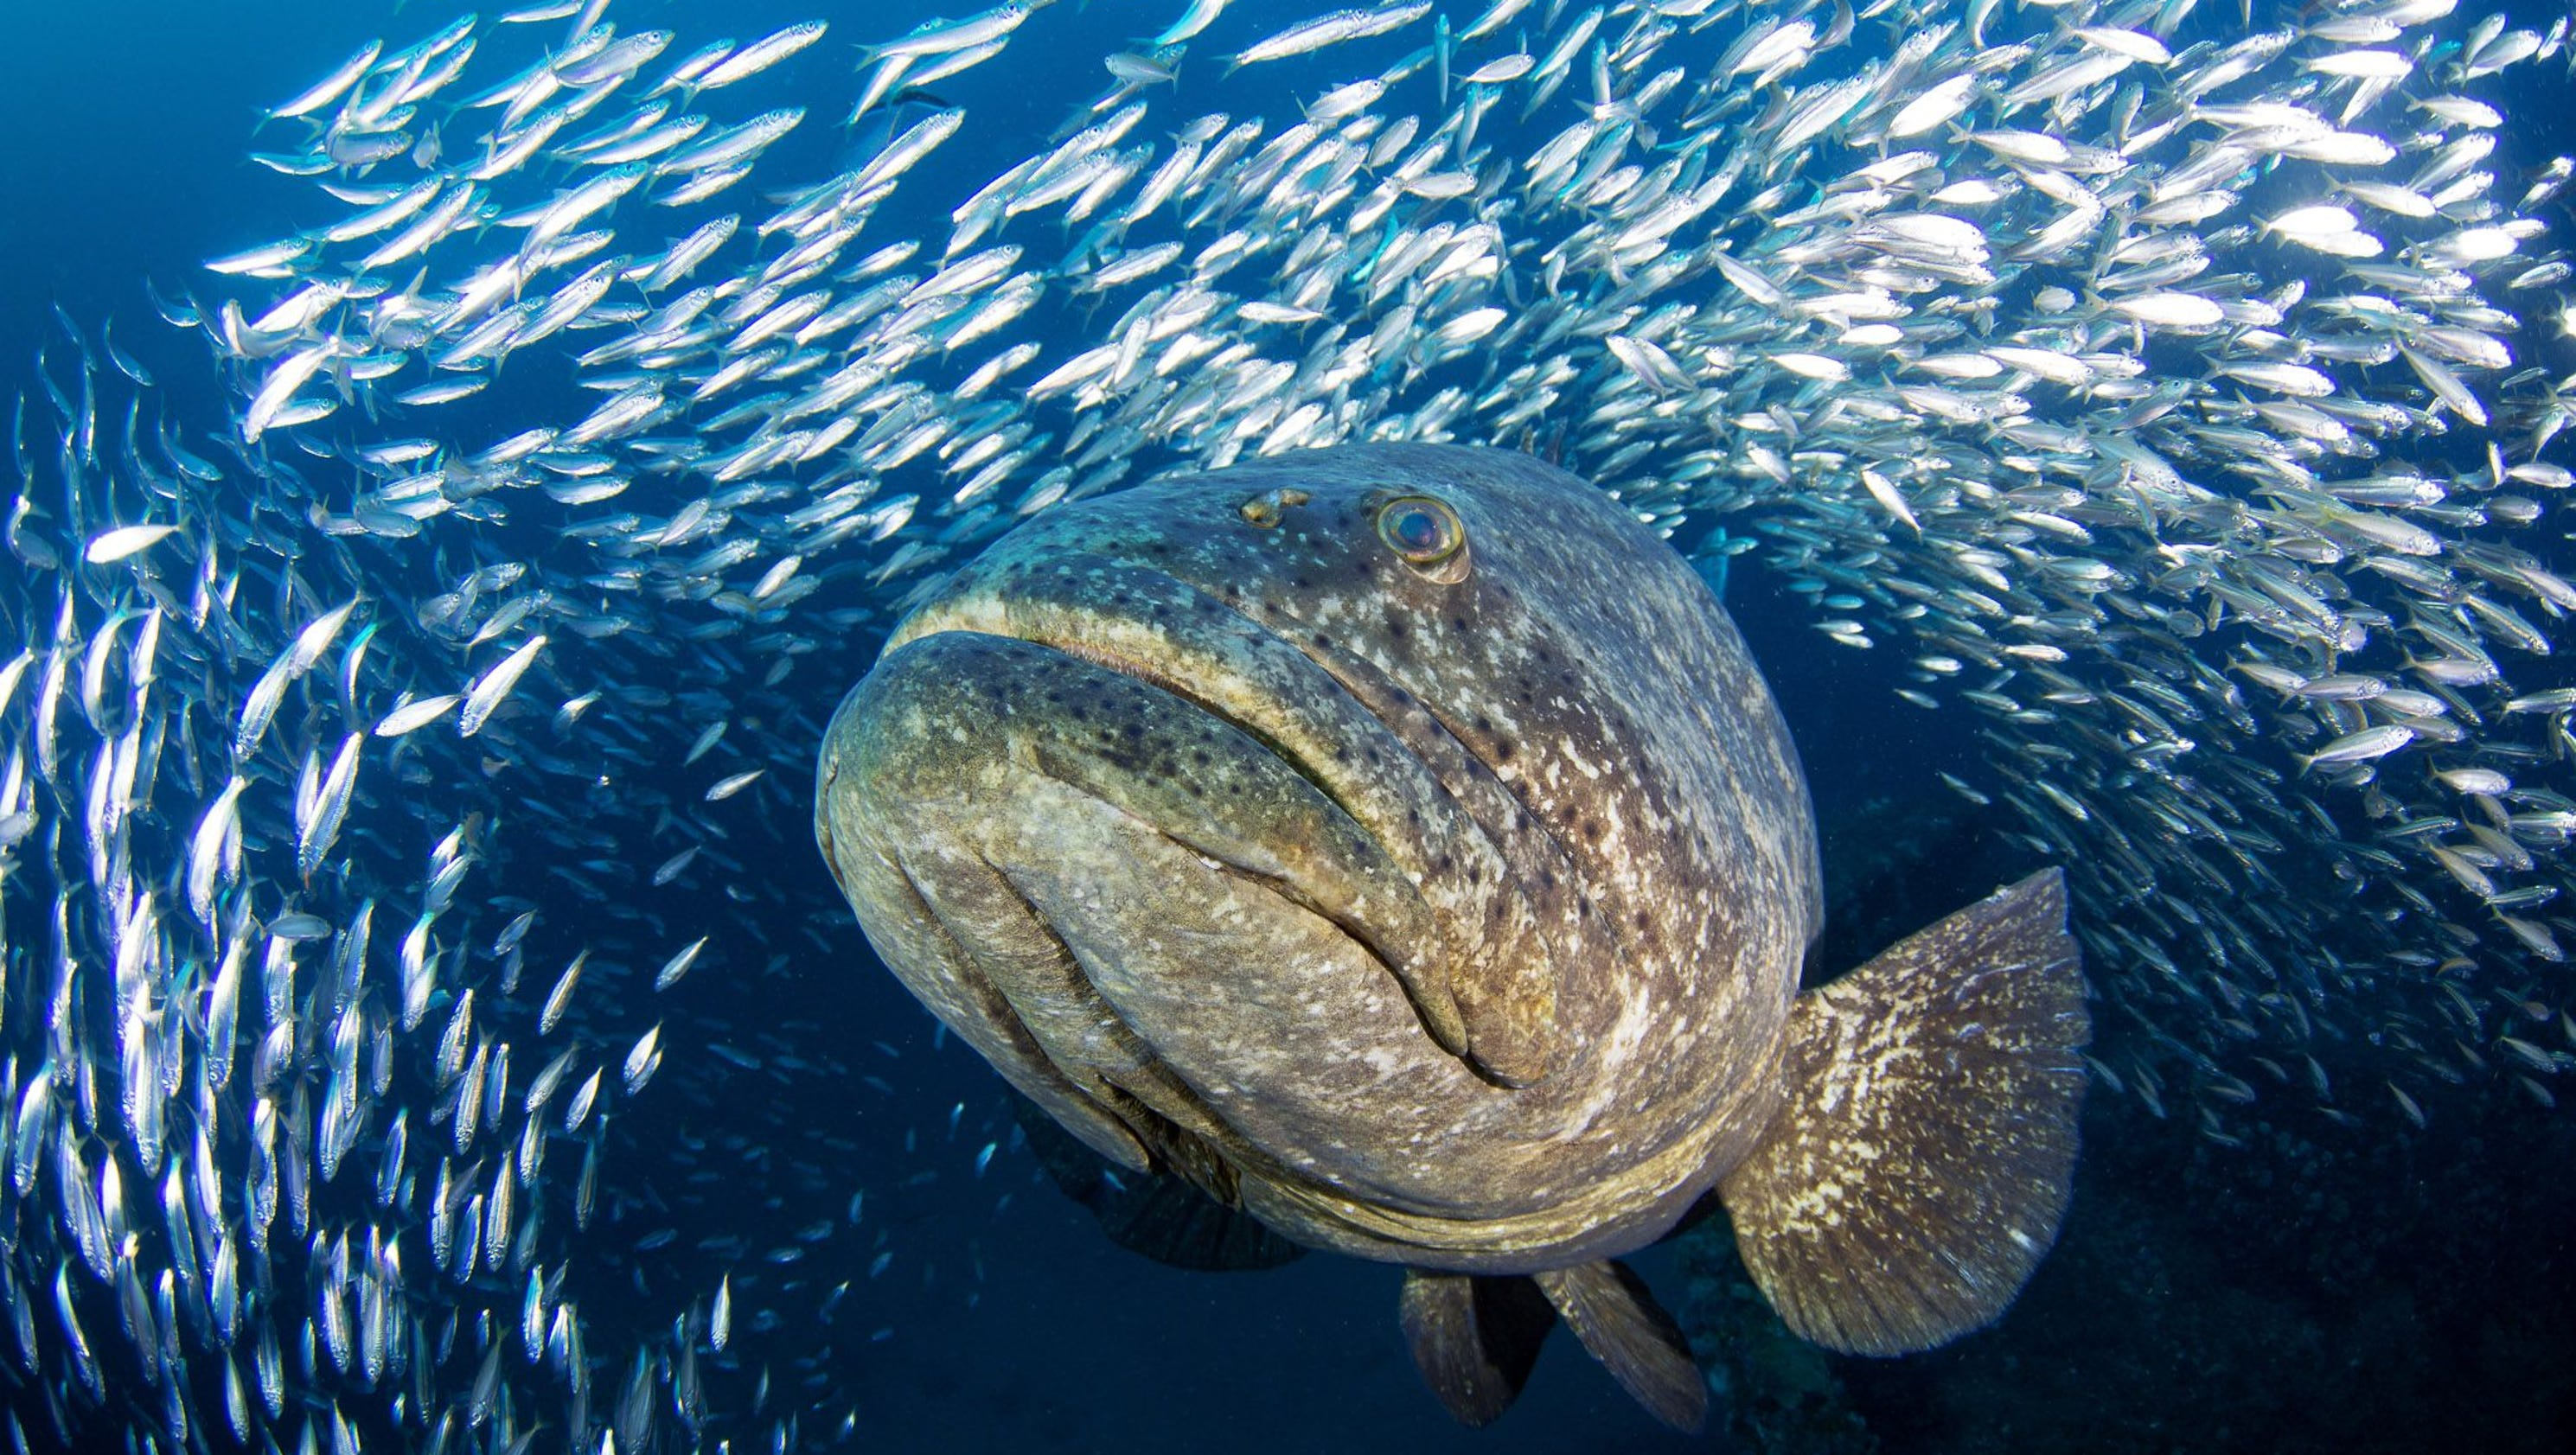 FWC meets about Goliath grouper and more this week